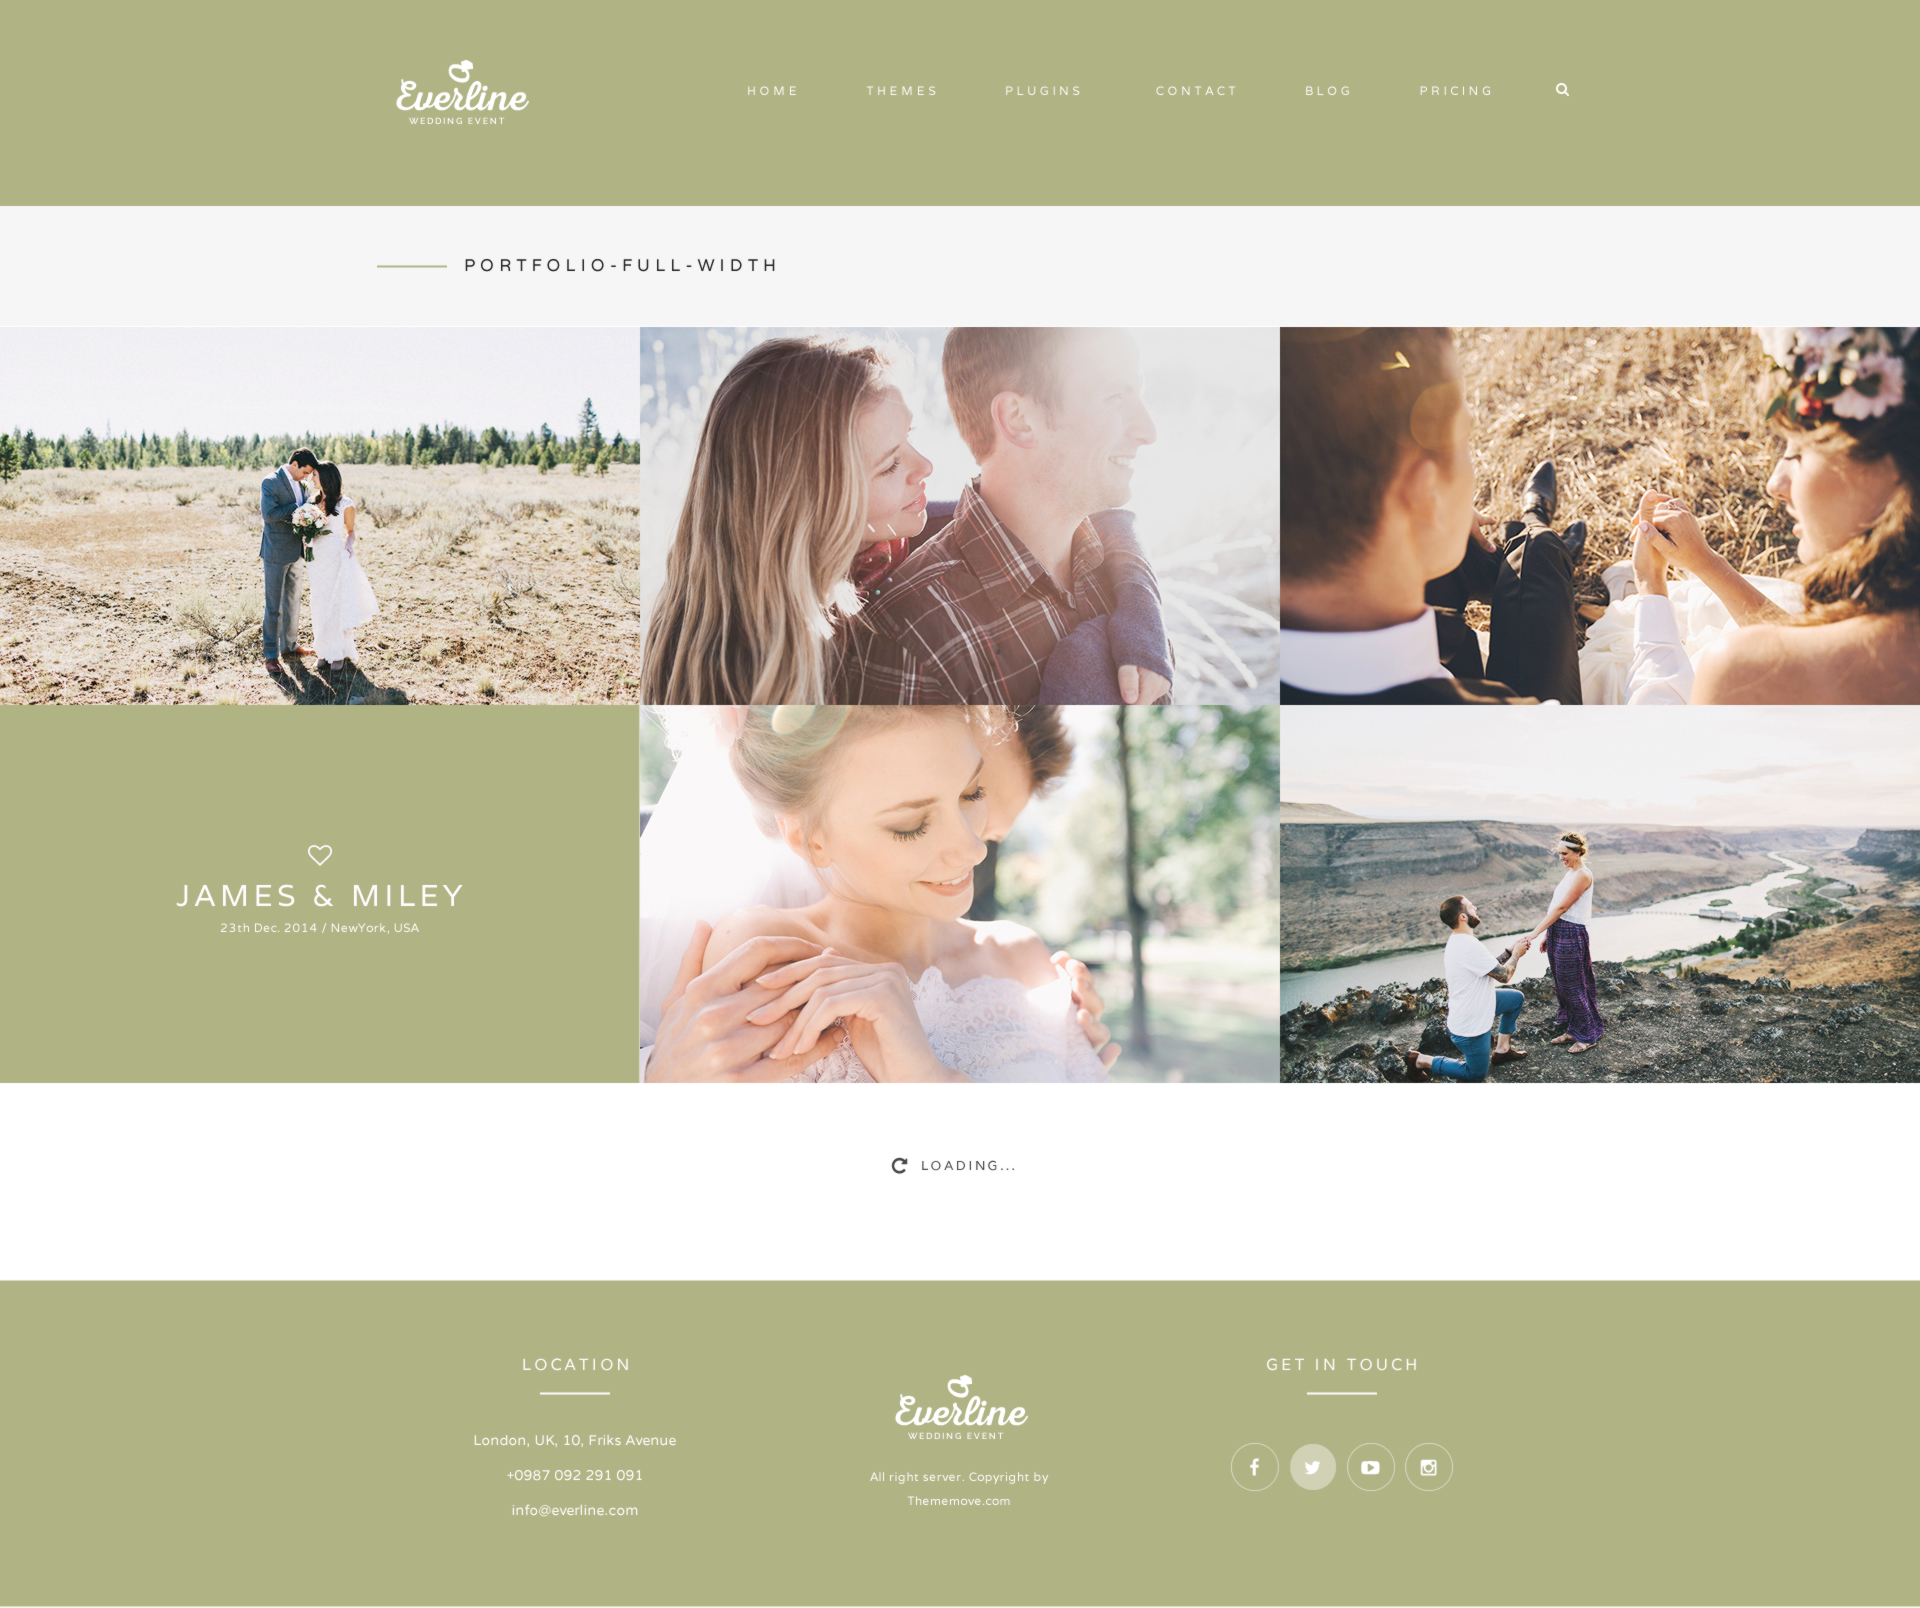 Everline wedding events html template by plazart themeforest everline wedding events html template maxwellsz